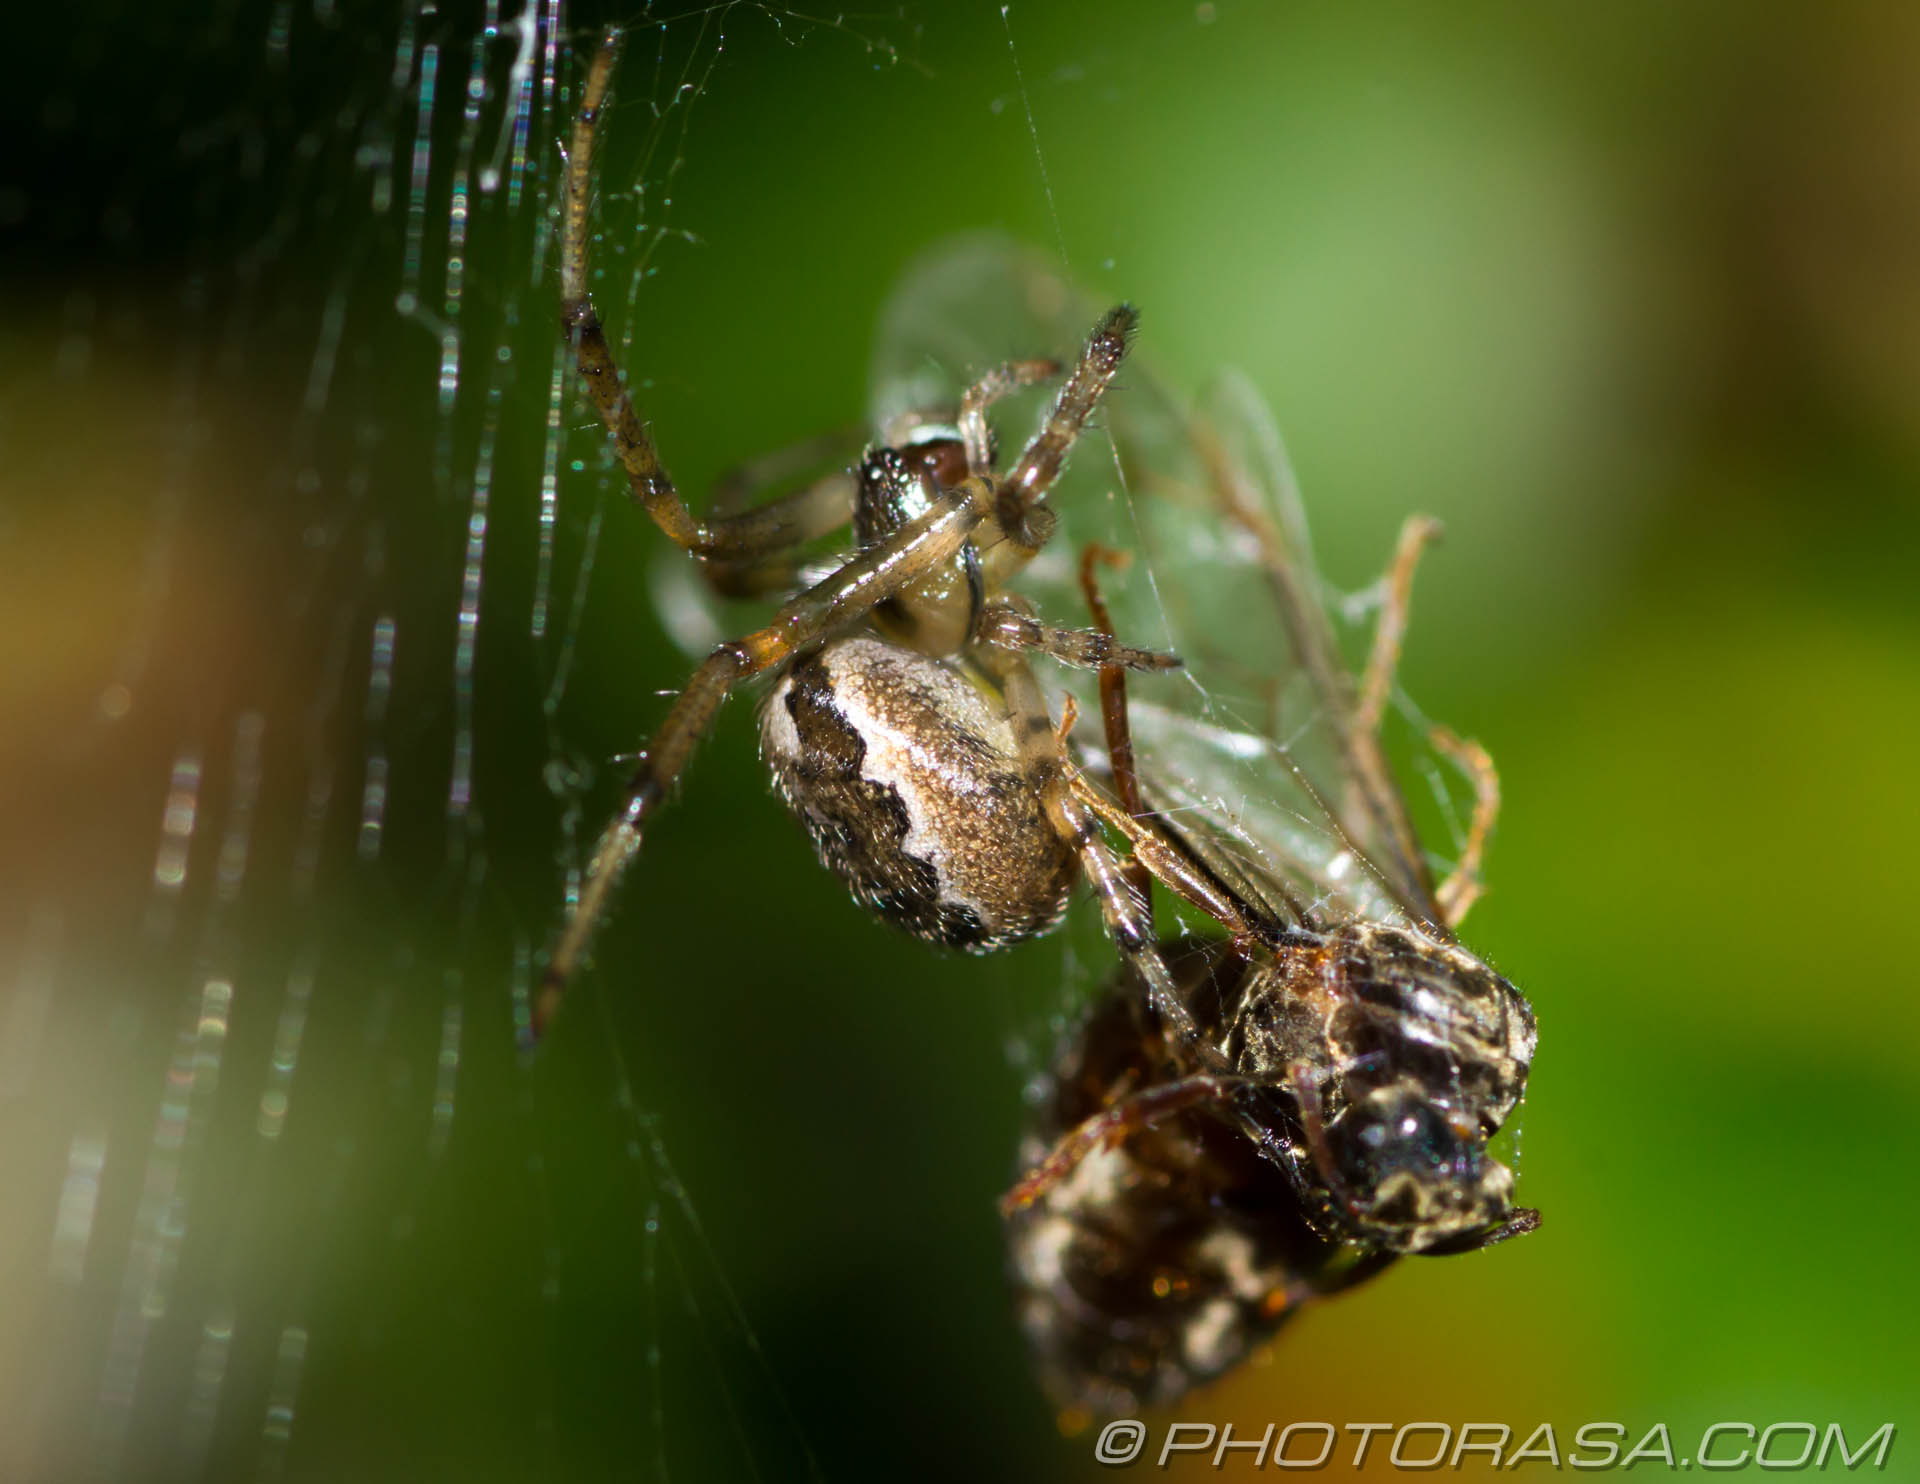 http://photorasa.com/spider-trapping-wrapping-fly/preparing-to-spin-some-gossamer/